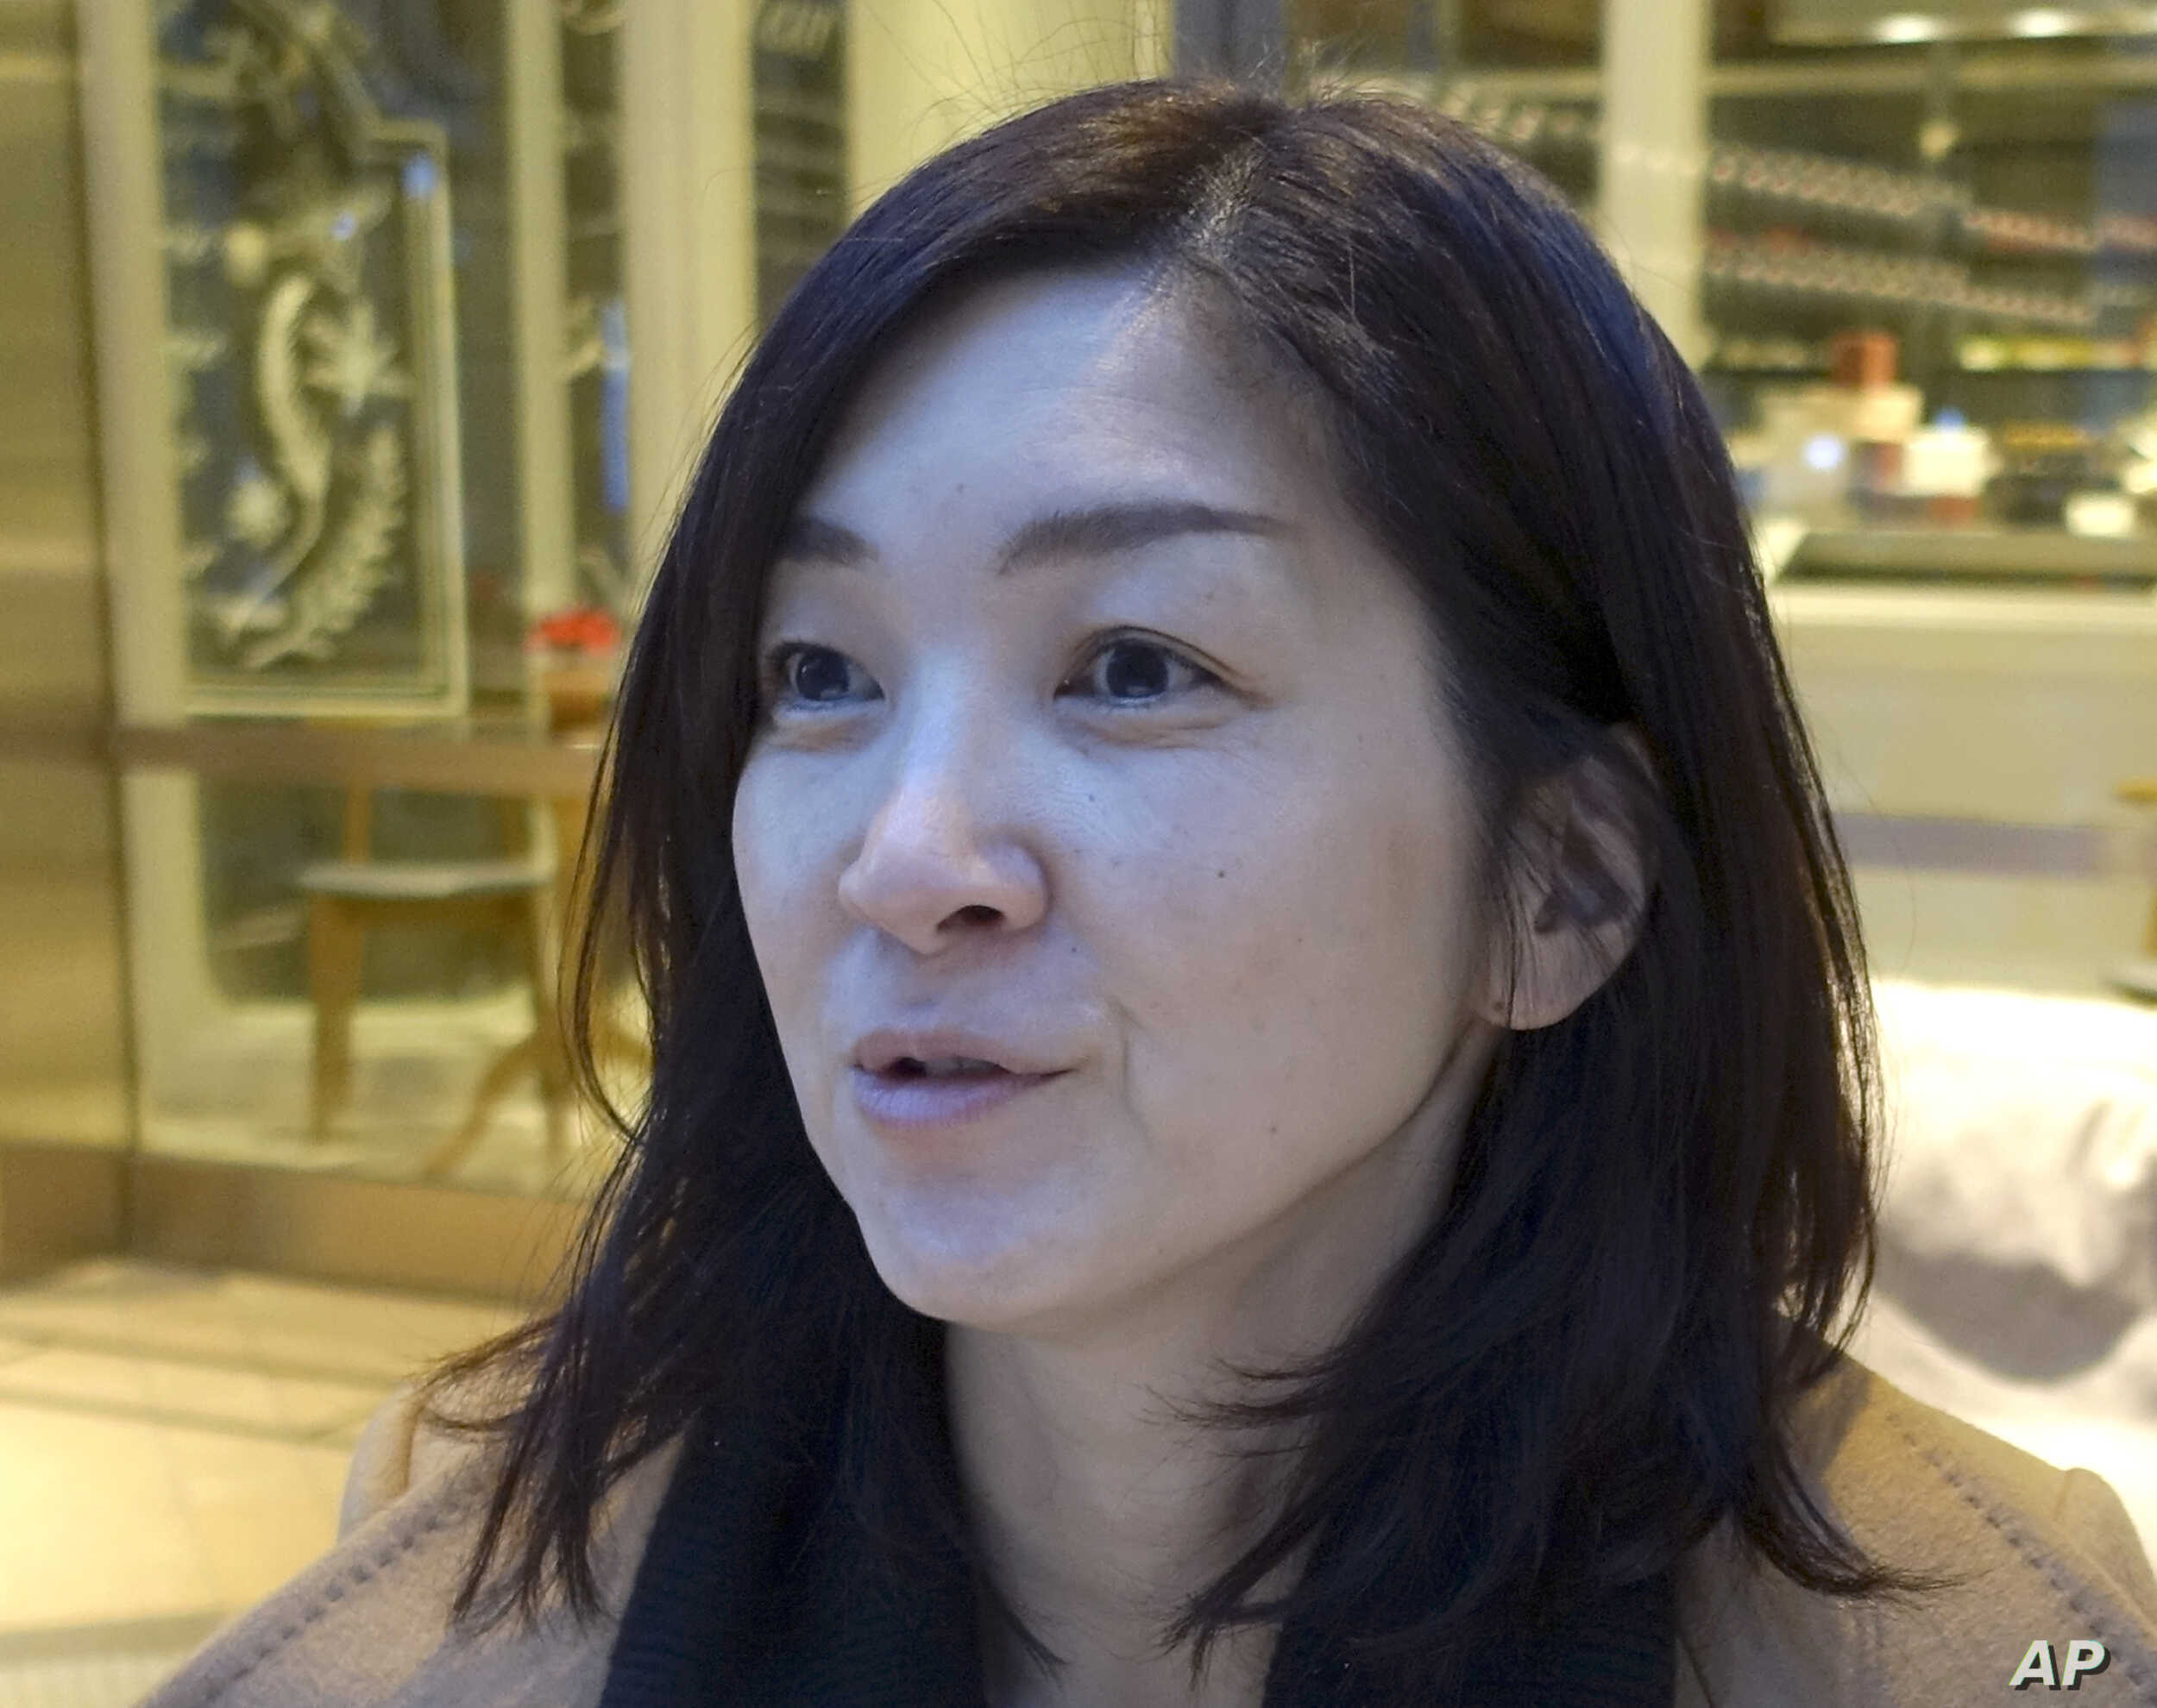 Mika Kobayashi, who heads a support group for sexual assault victims based on her own experience as a victim in 2000, speaks during an interview in Tokyo, Dec. 25, 2017. Kobayashi said her focus is on providing support and understanding for victims, ...